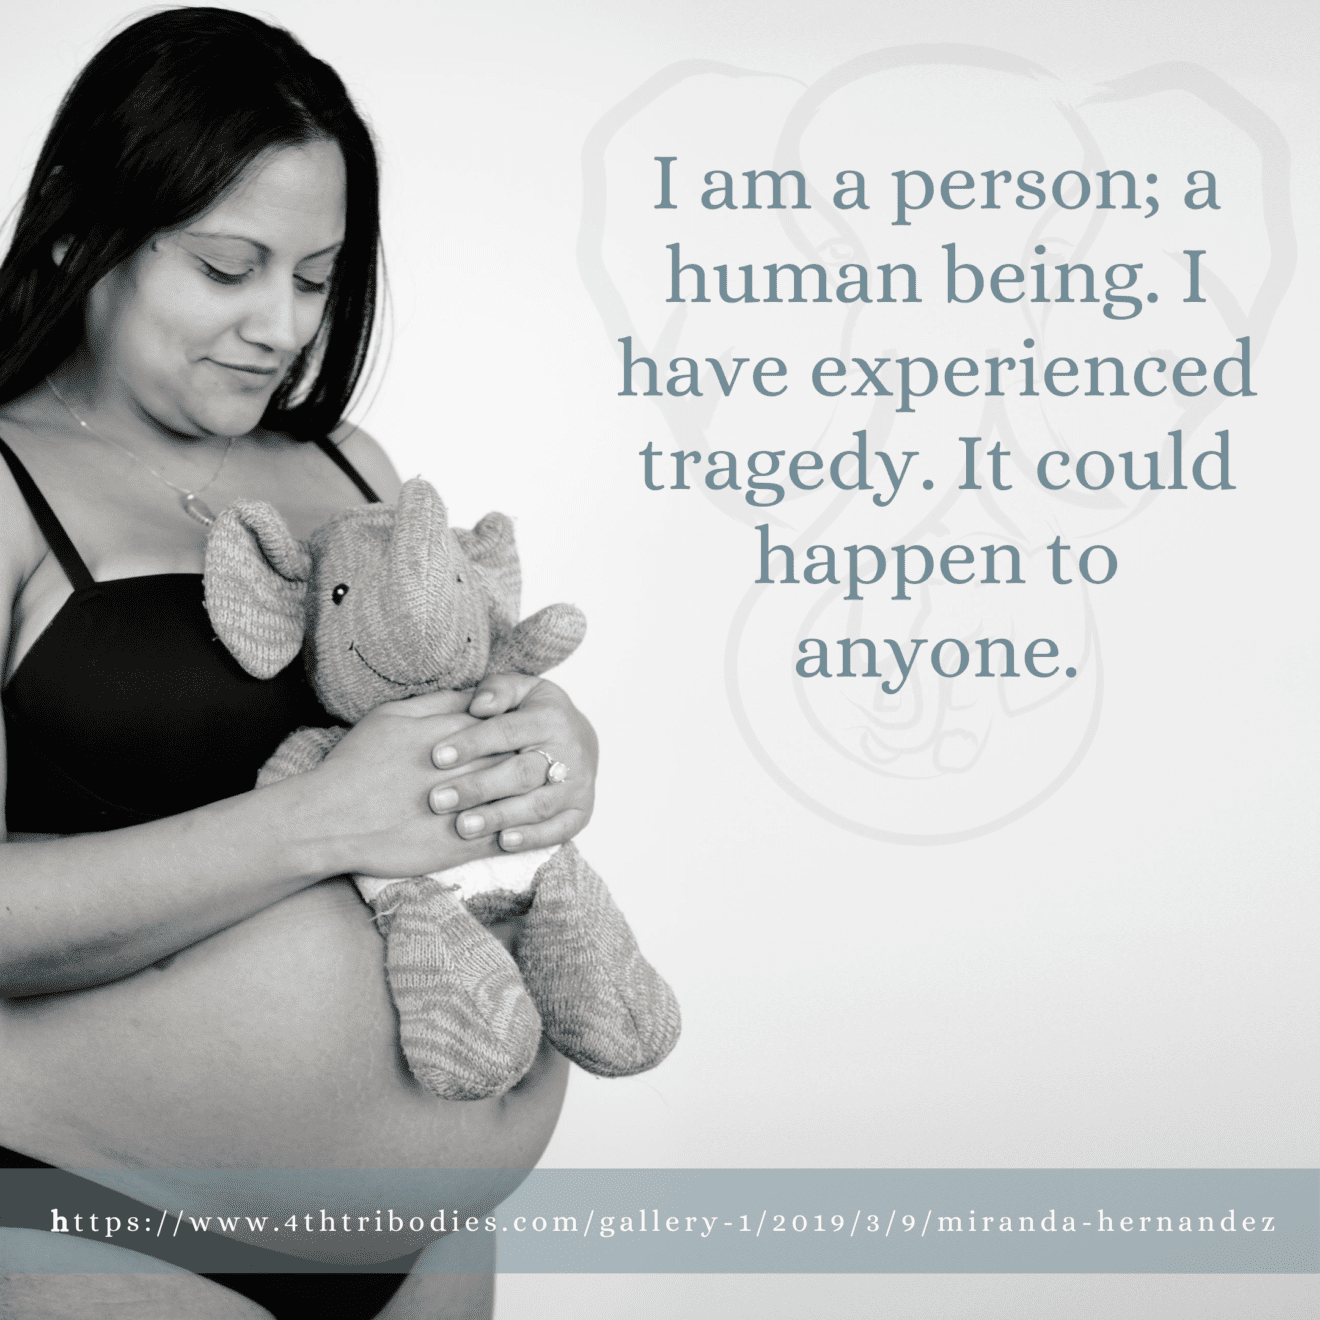 I am a person; a human being. I have experienced tragedy. It could happen to anyone.